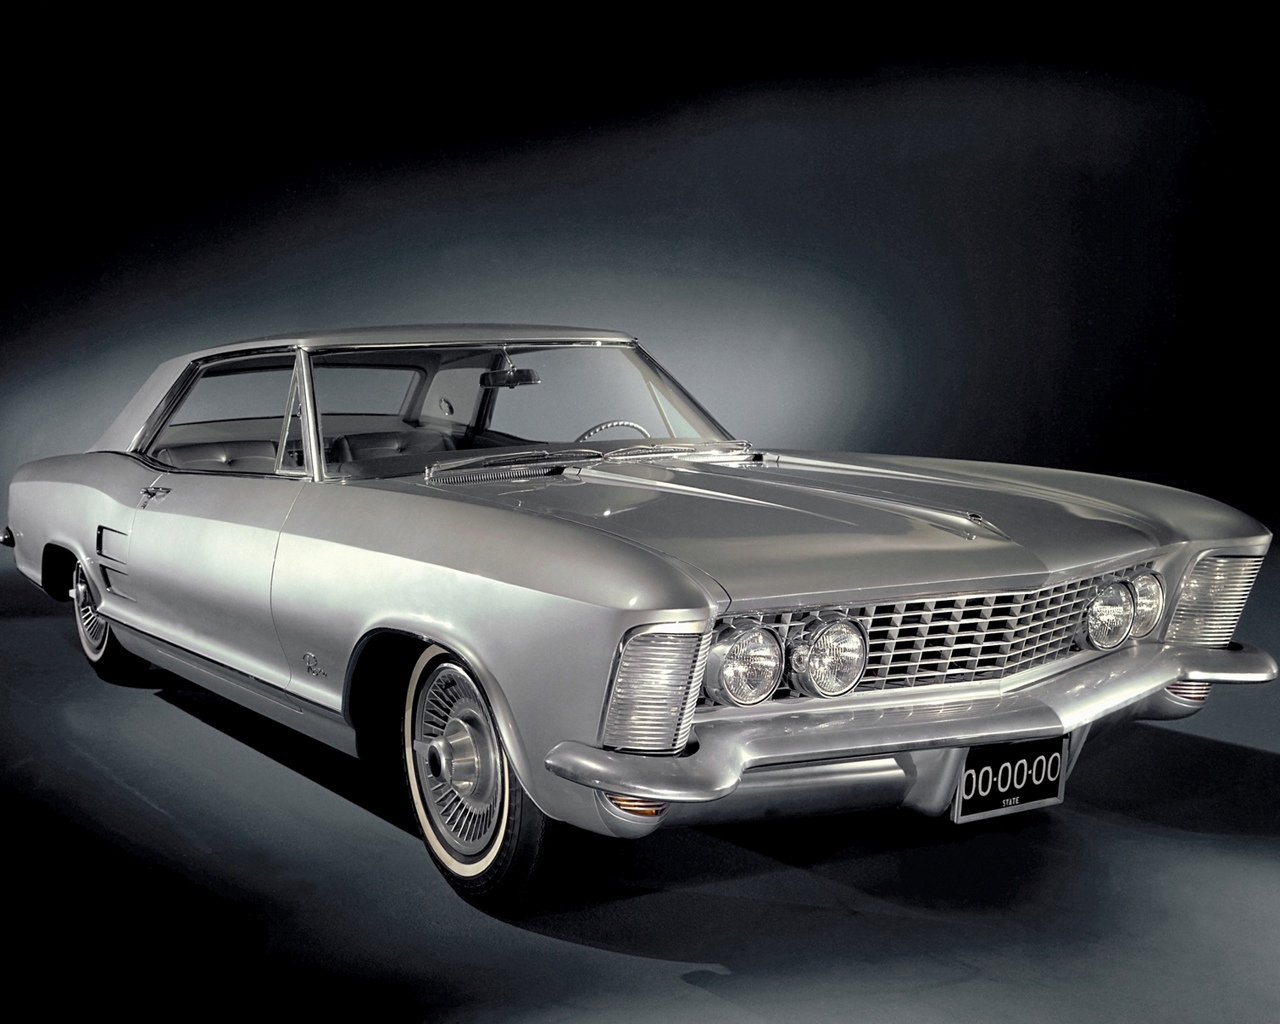 All wallpapers wallpapers 2012 american classic cars - Old american cars wallpapers ...